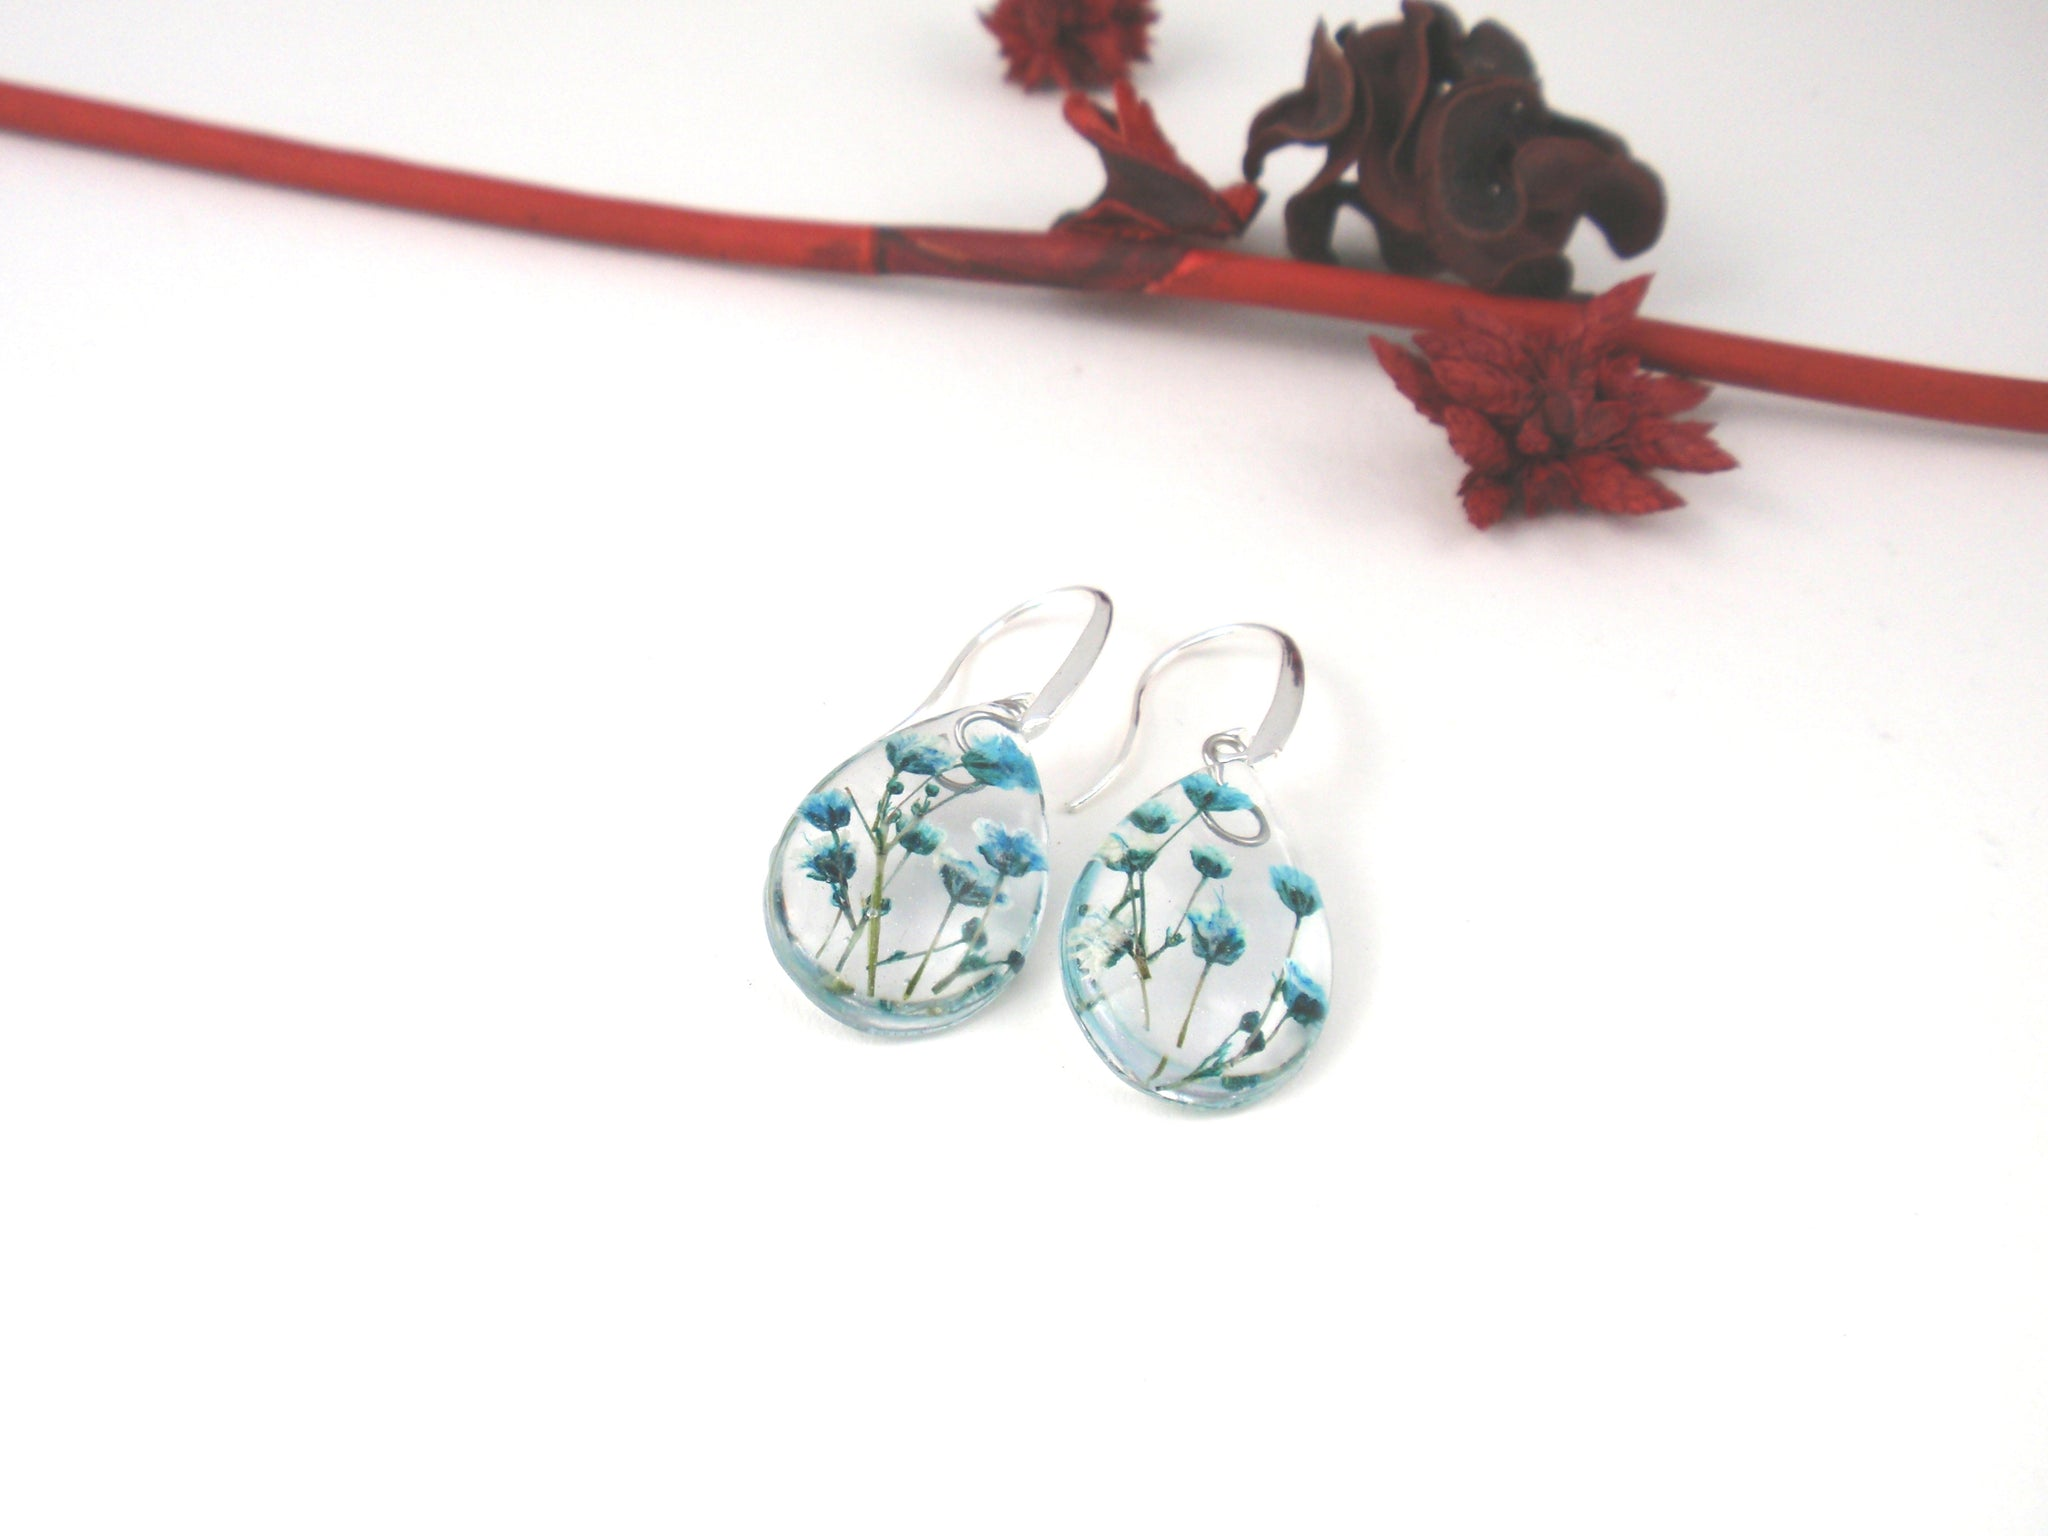 Botanical Resin Earrings with blue Babys breath flowers